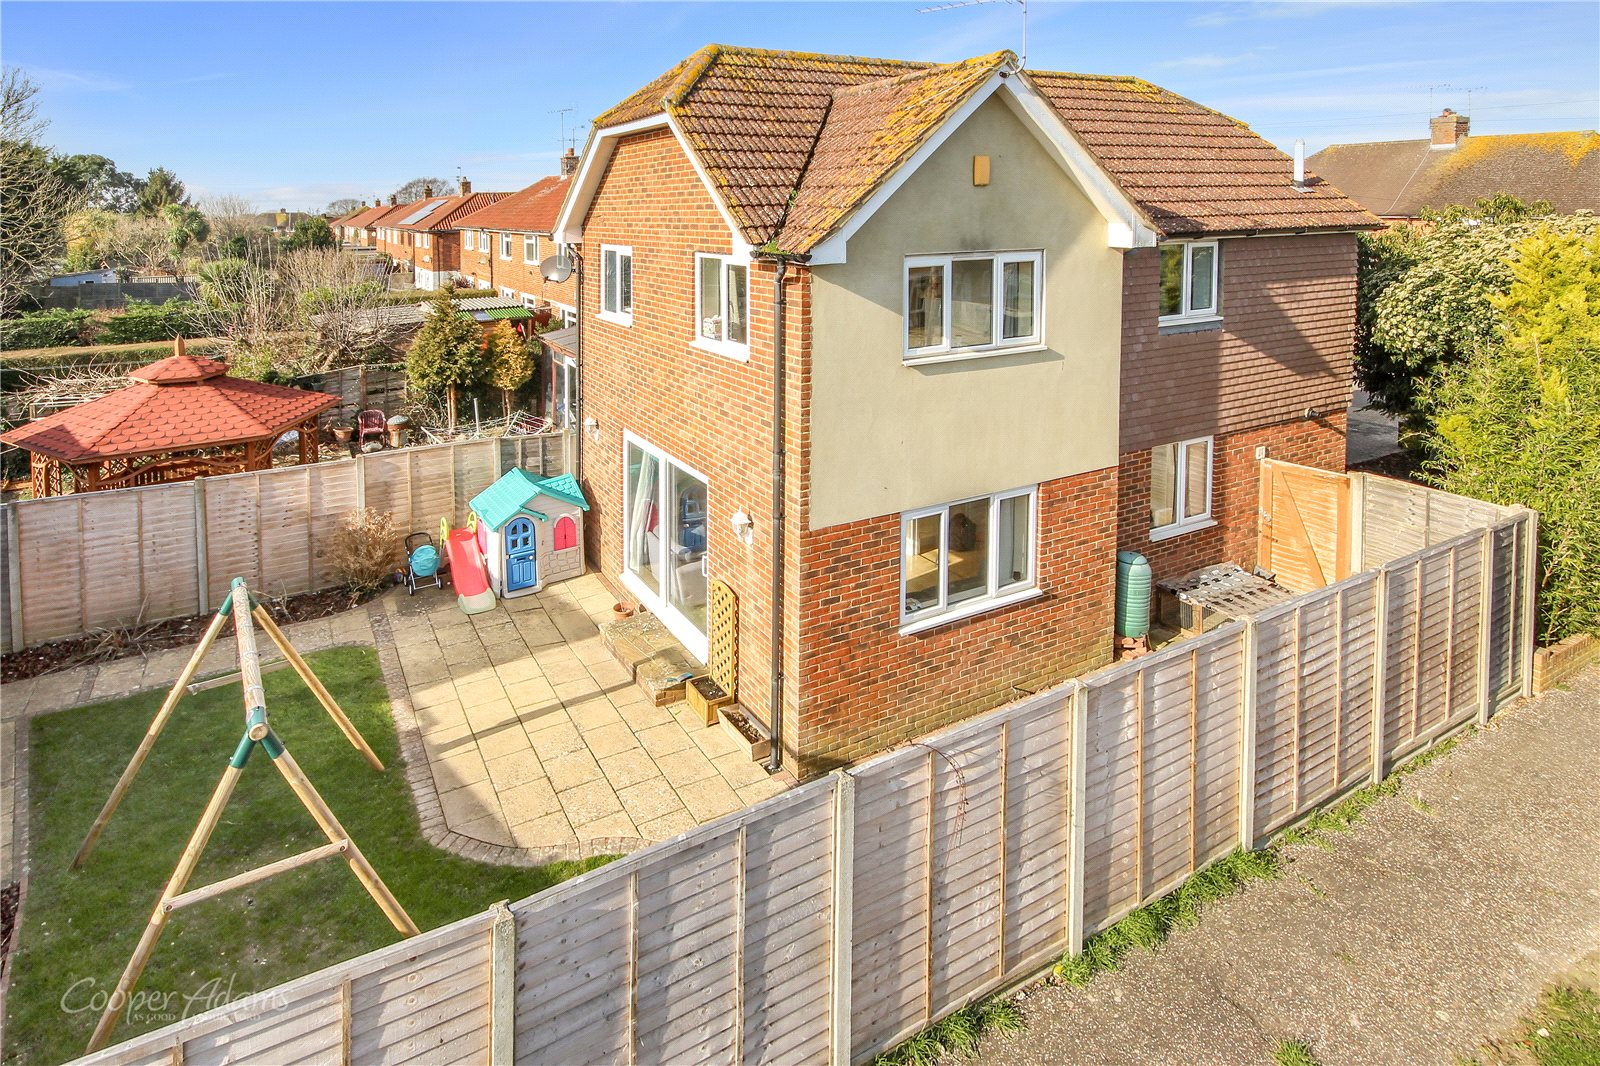 3 bed house for sale in Lloyd Goring Close, Angmering  - Property Image 1